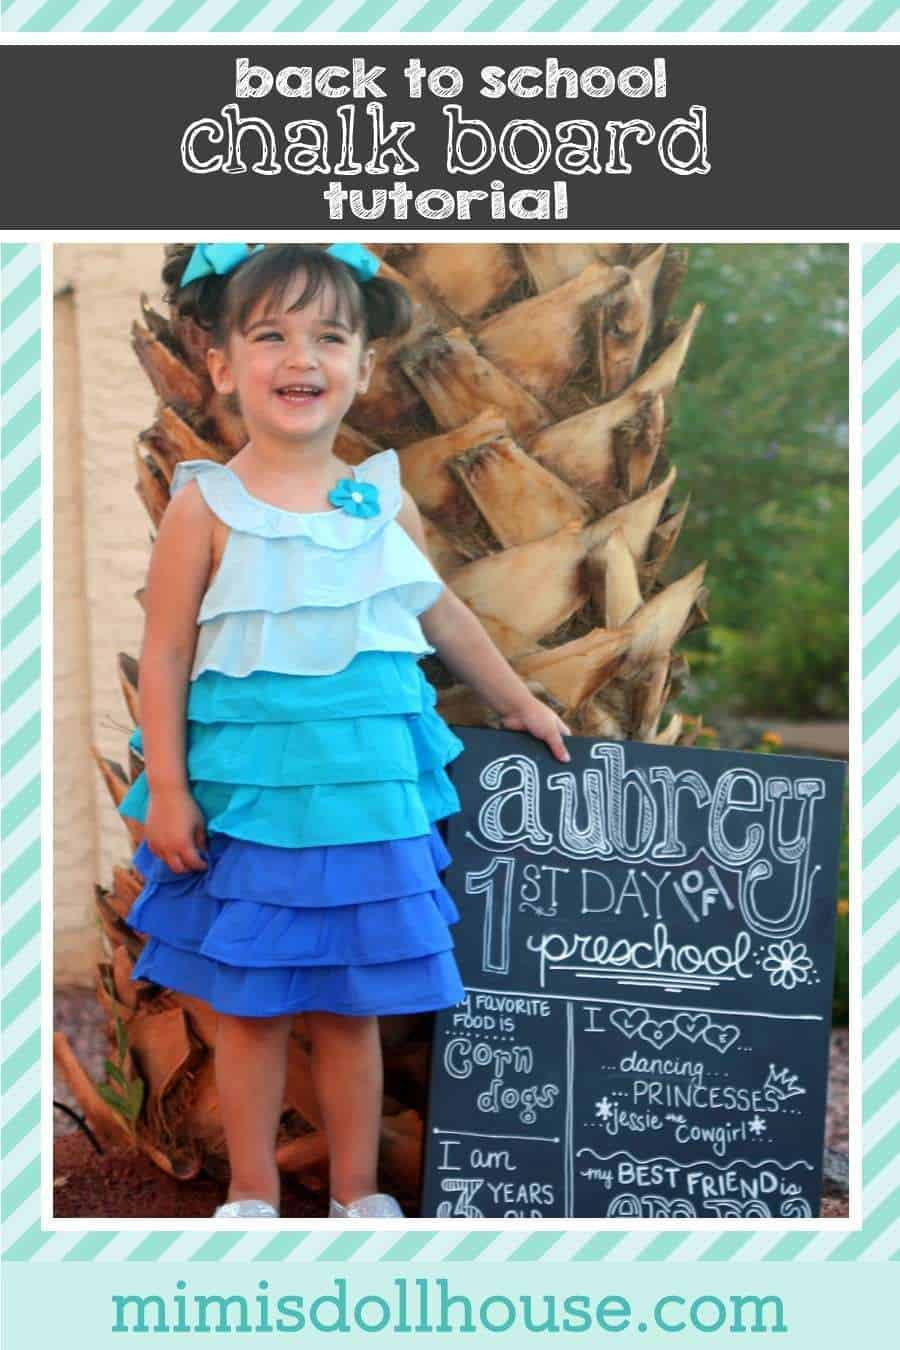 Back to School: Aubrey's First Day of School Sign Tutorial. Celebrate your little ones big milestones with a fun and easy to create chalkboard sign. I'm sharing this quick and simple tutorial. Be sure to check out all our craft tutorials ans DIY ideas.